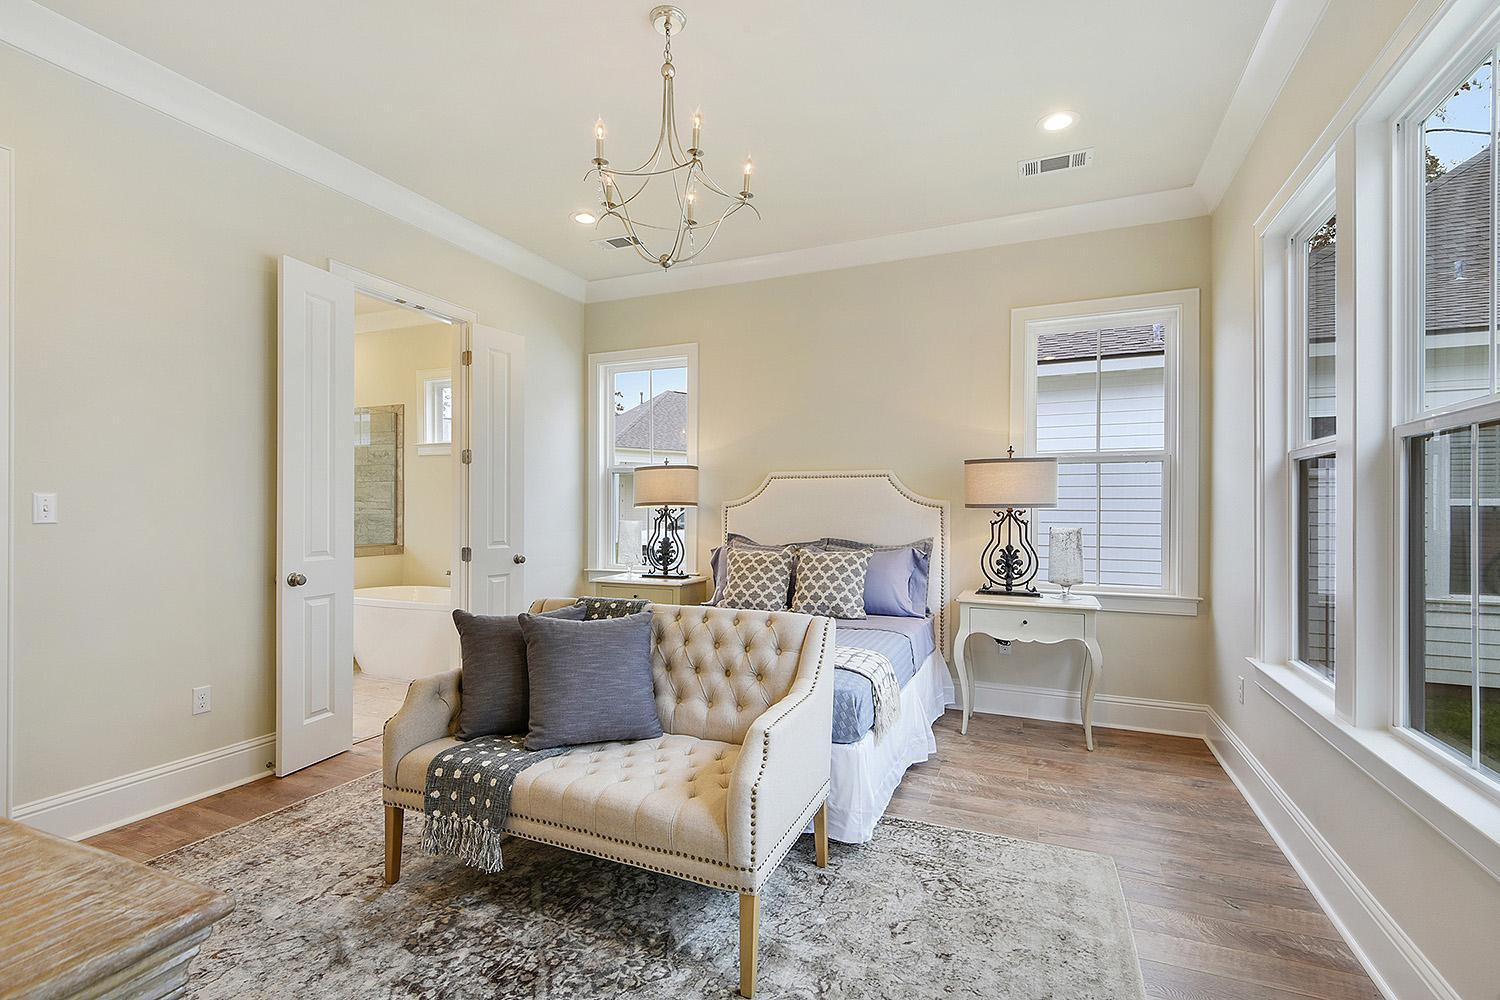 Bedroom featured in the Charleston (Money Hill Courtyard) By Highland Homes in New Orleans, LA